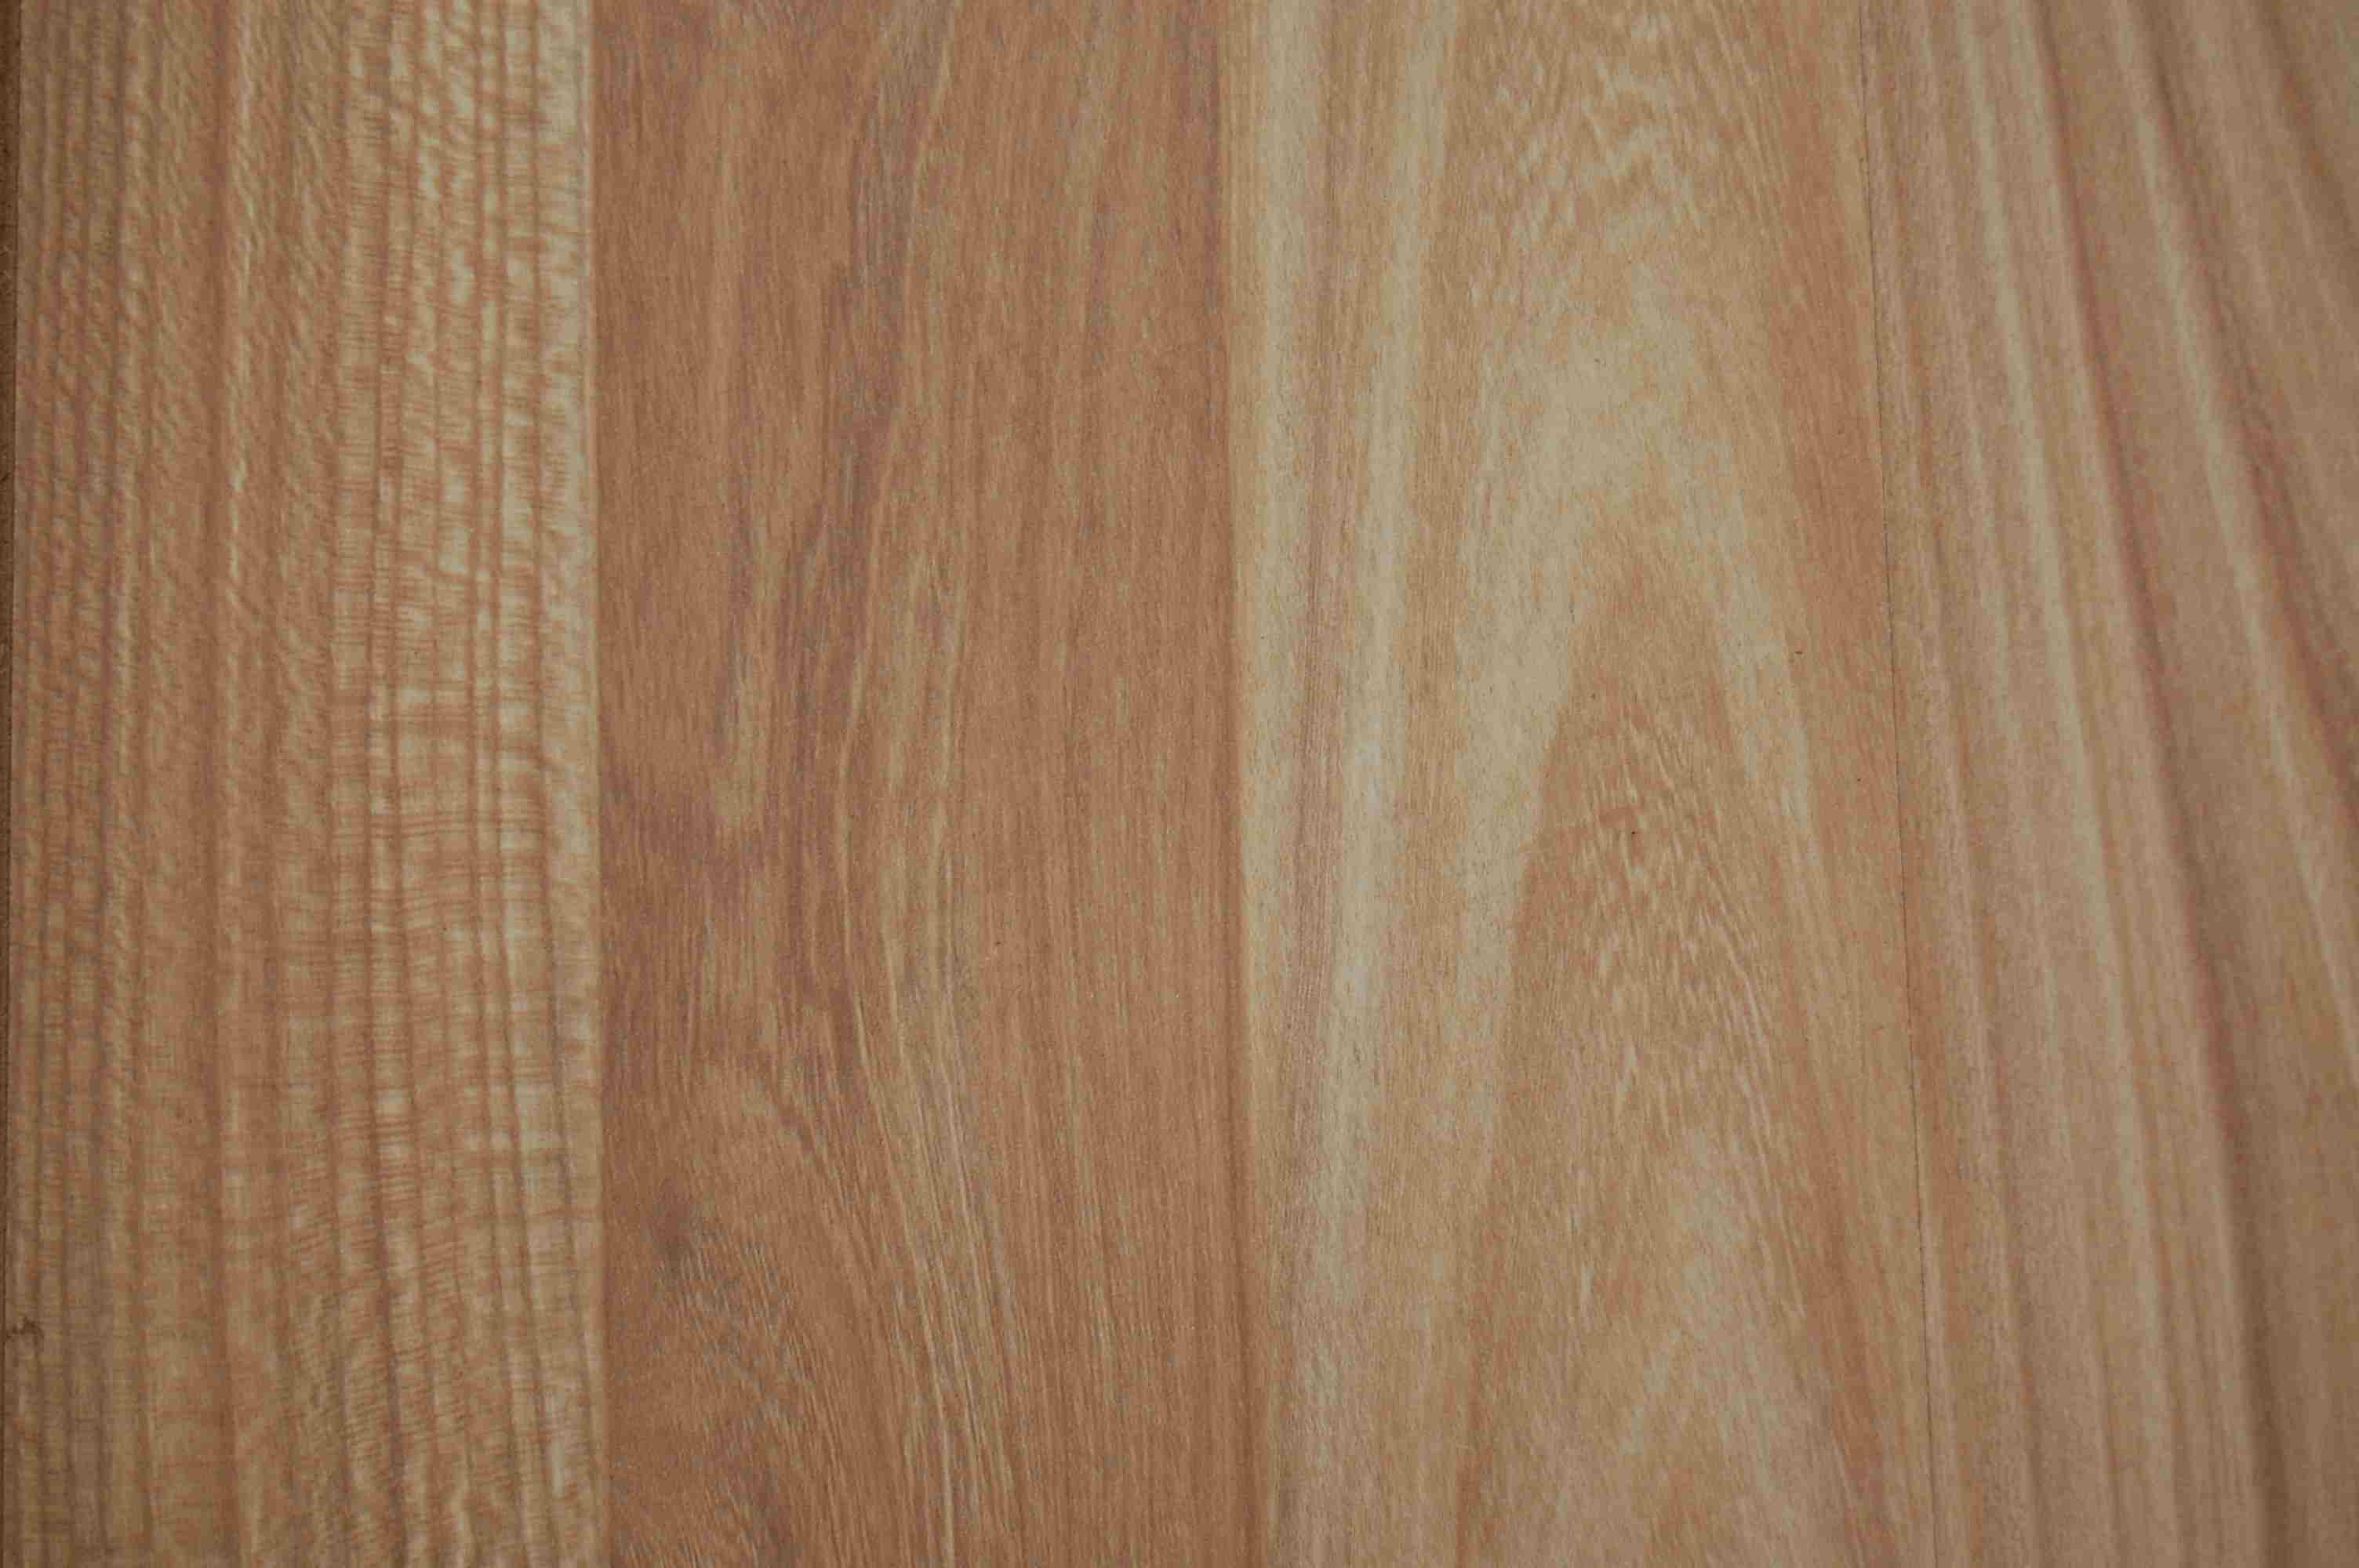 Laminate flooring wood flooring laminate flooring for Wood and laminate flooring